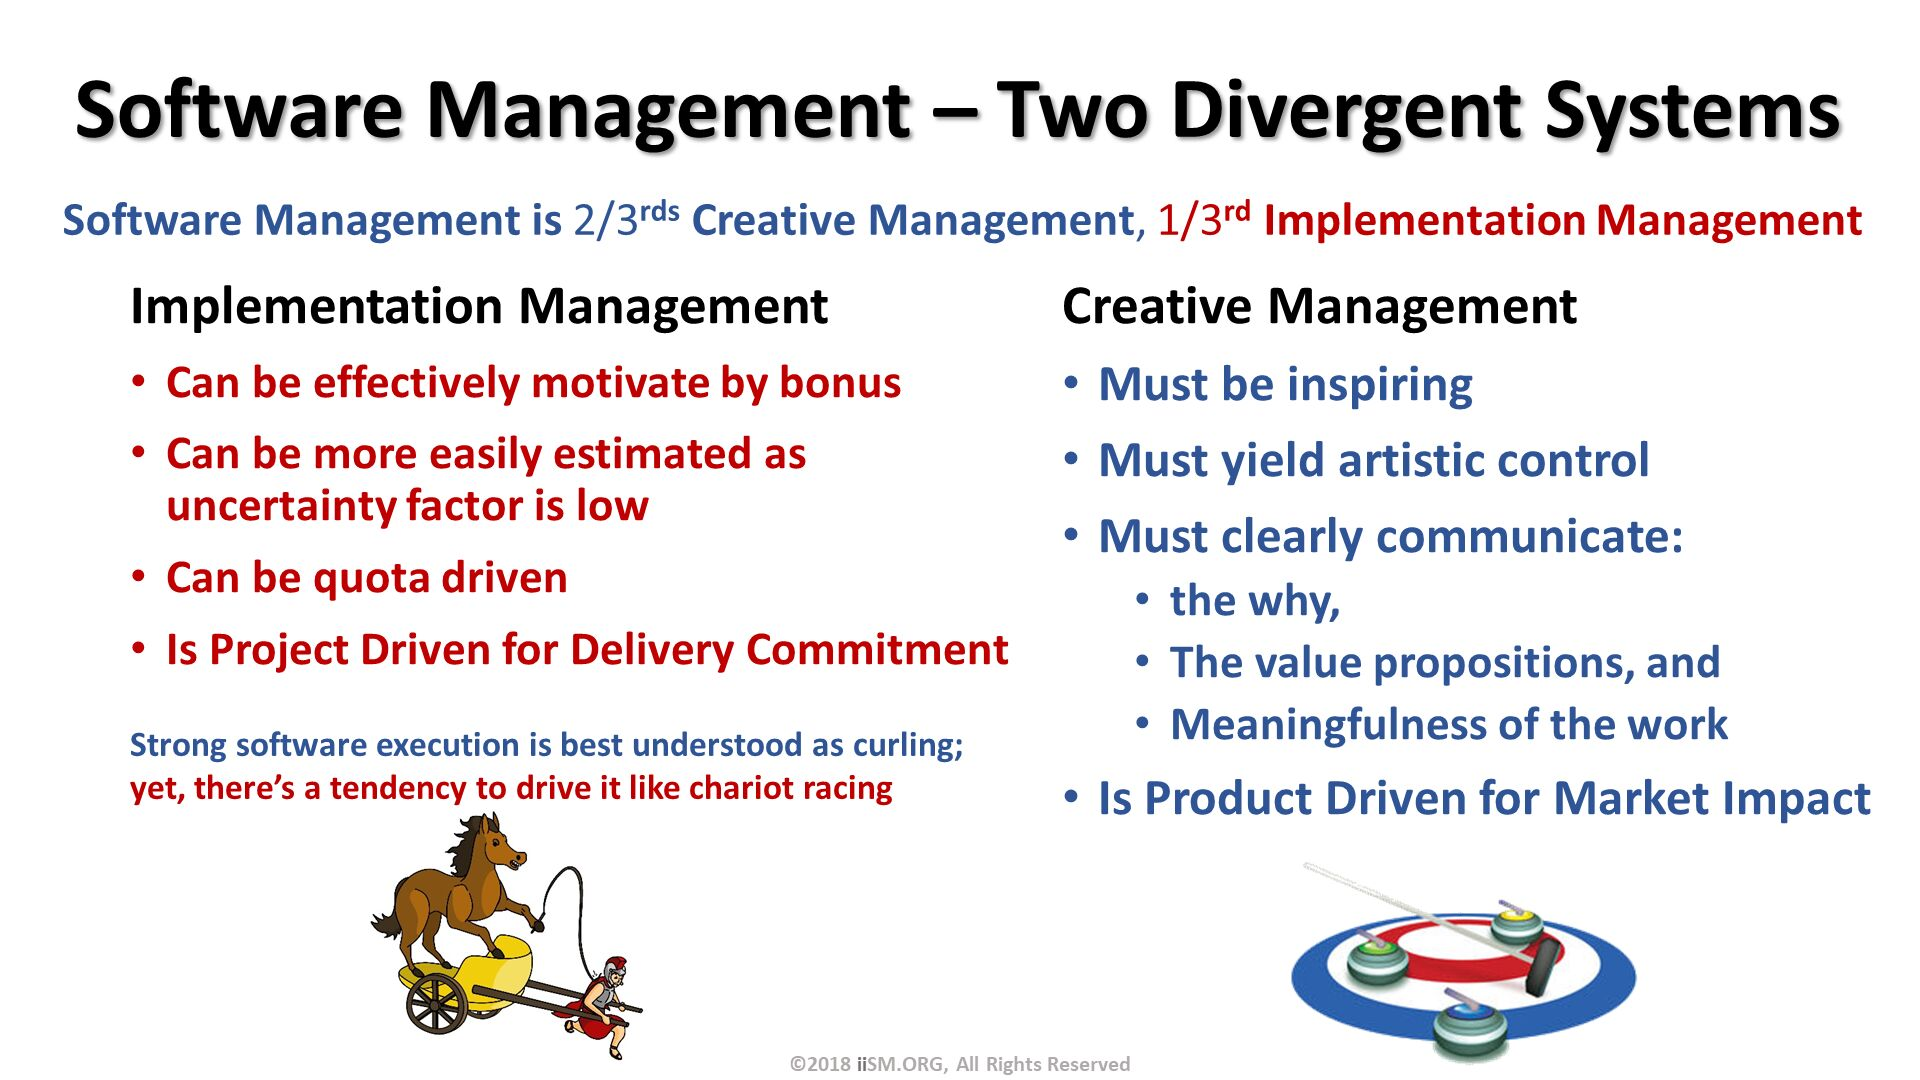 Software Management – Two Divergent Systems. Implementation Management Can be effectively motivate by bonus Can be more easily estimated as uncertainty factor is low Can be quota driven Is Project Driven for Delivery Commitment . Creative Management Must be inspiring Must yield artistic control Must clearly communicate:  the why,  The value propositions, and  Meaningfulness of the work Is Product Driven for Market Impact. Software Management is 2/3rds Creative Management, 1/3rd Implementation Management. Strong software execution is best understood as curling; yet, there's a tendency to drive it like chariot racing . ©2018 iiSM.ORG, All Rights Reserved.